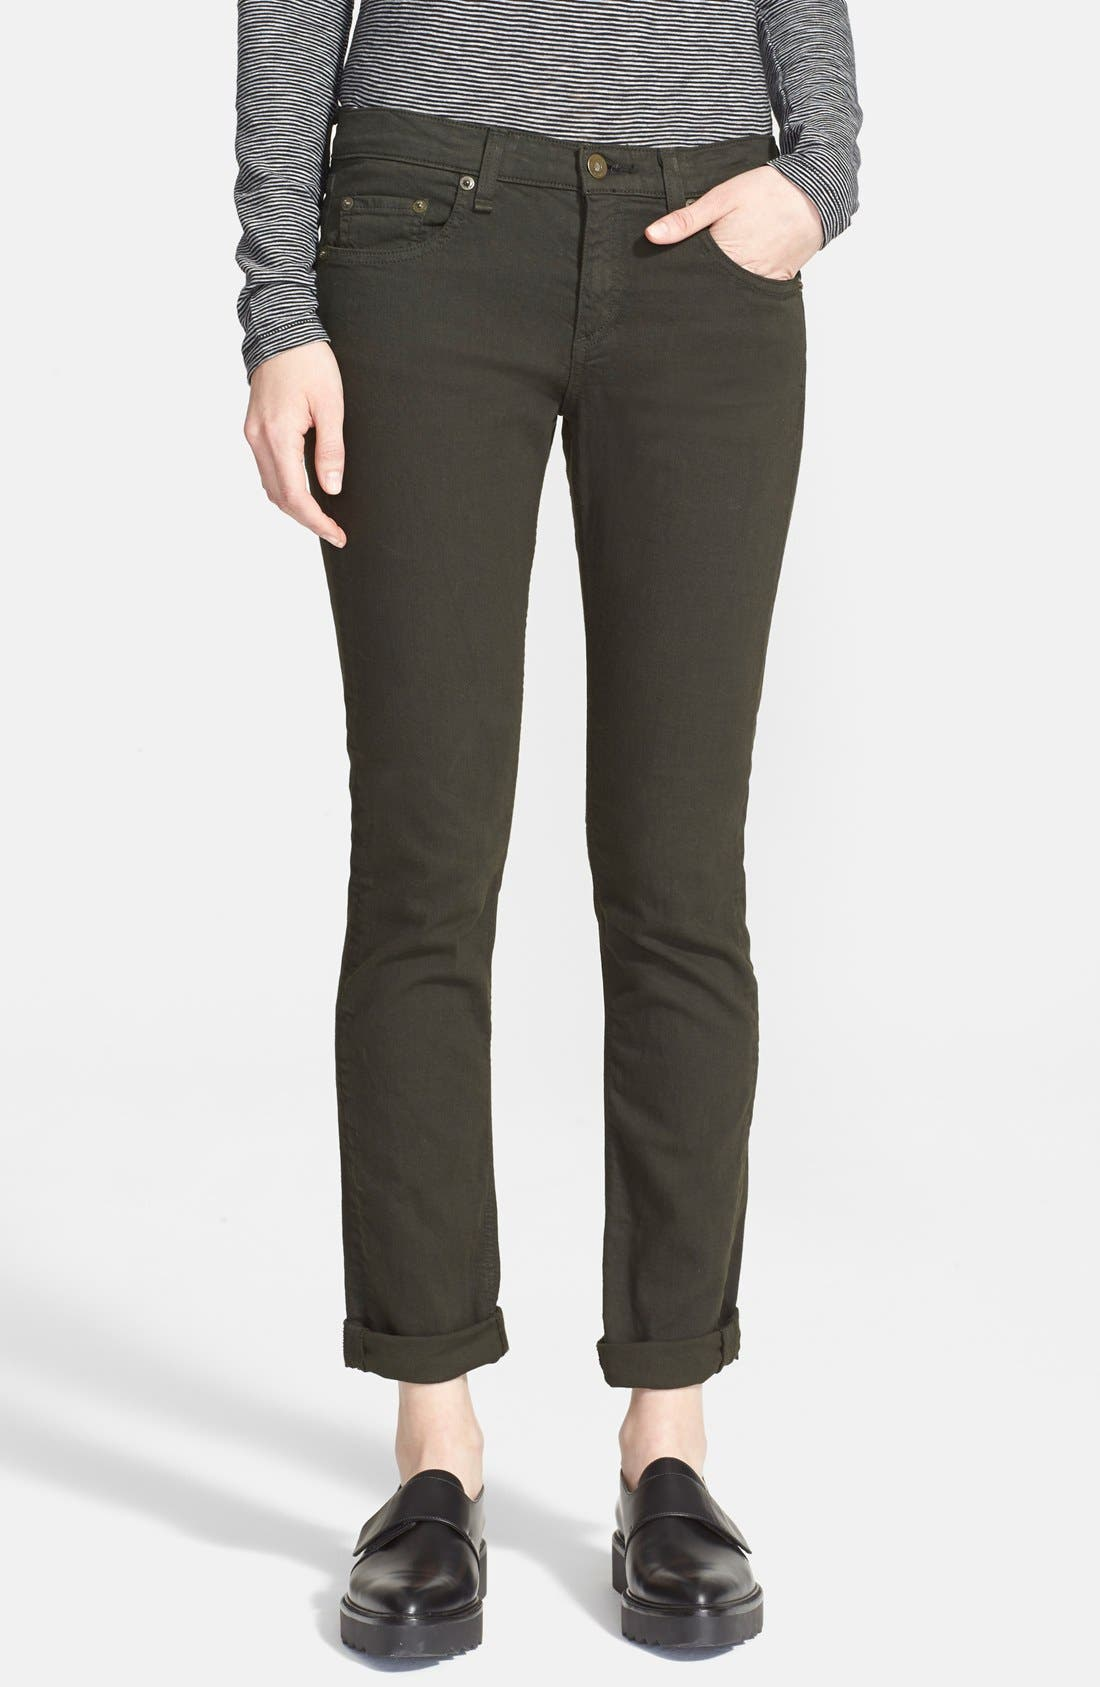 rag & bone/JEAN The Dre Slim Fit Boyfriend Jeans (Aged Dark Olive)